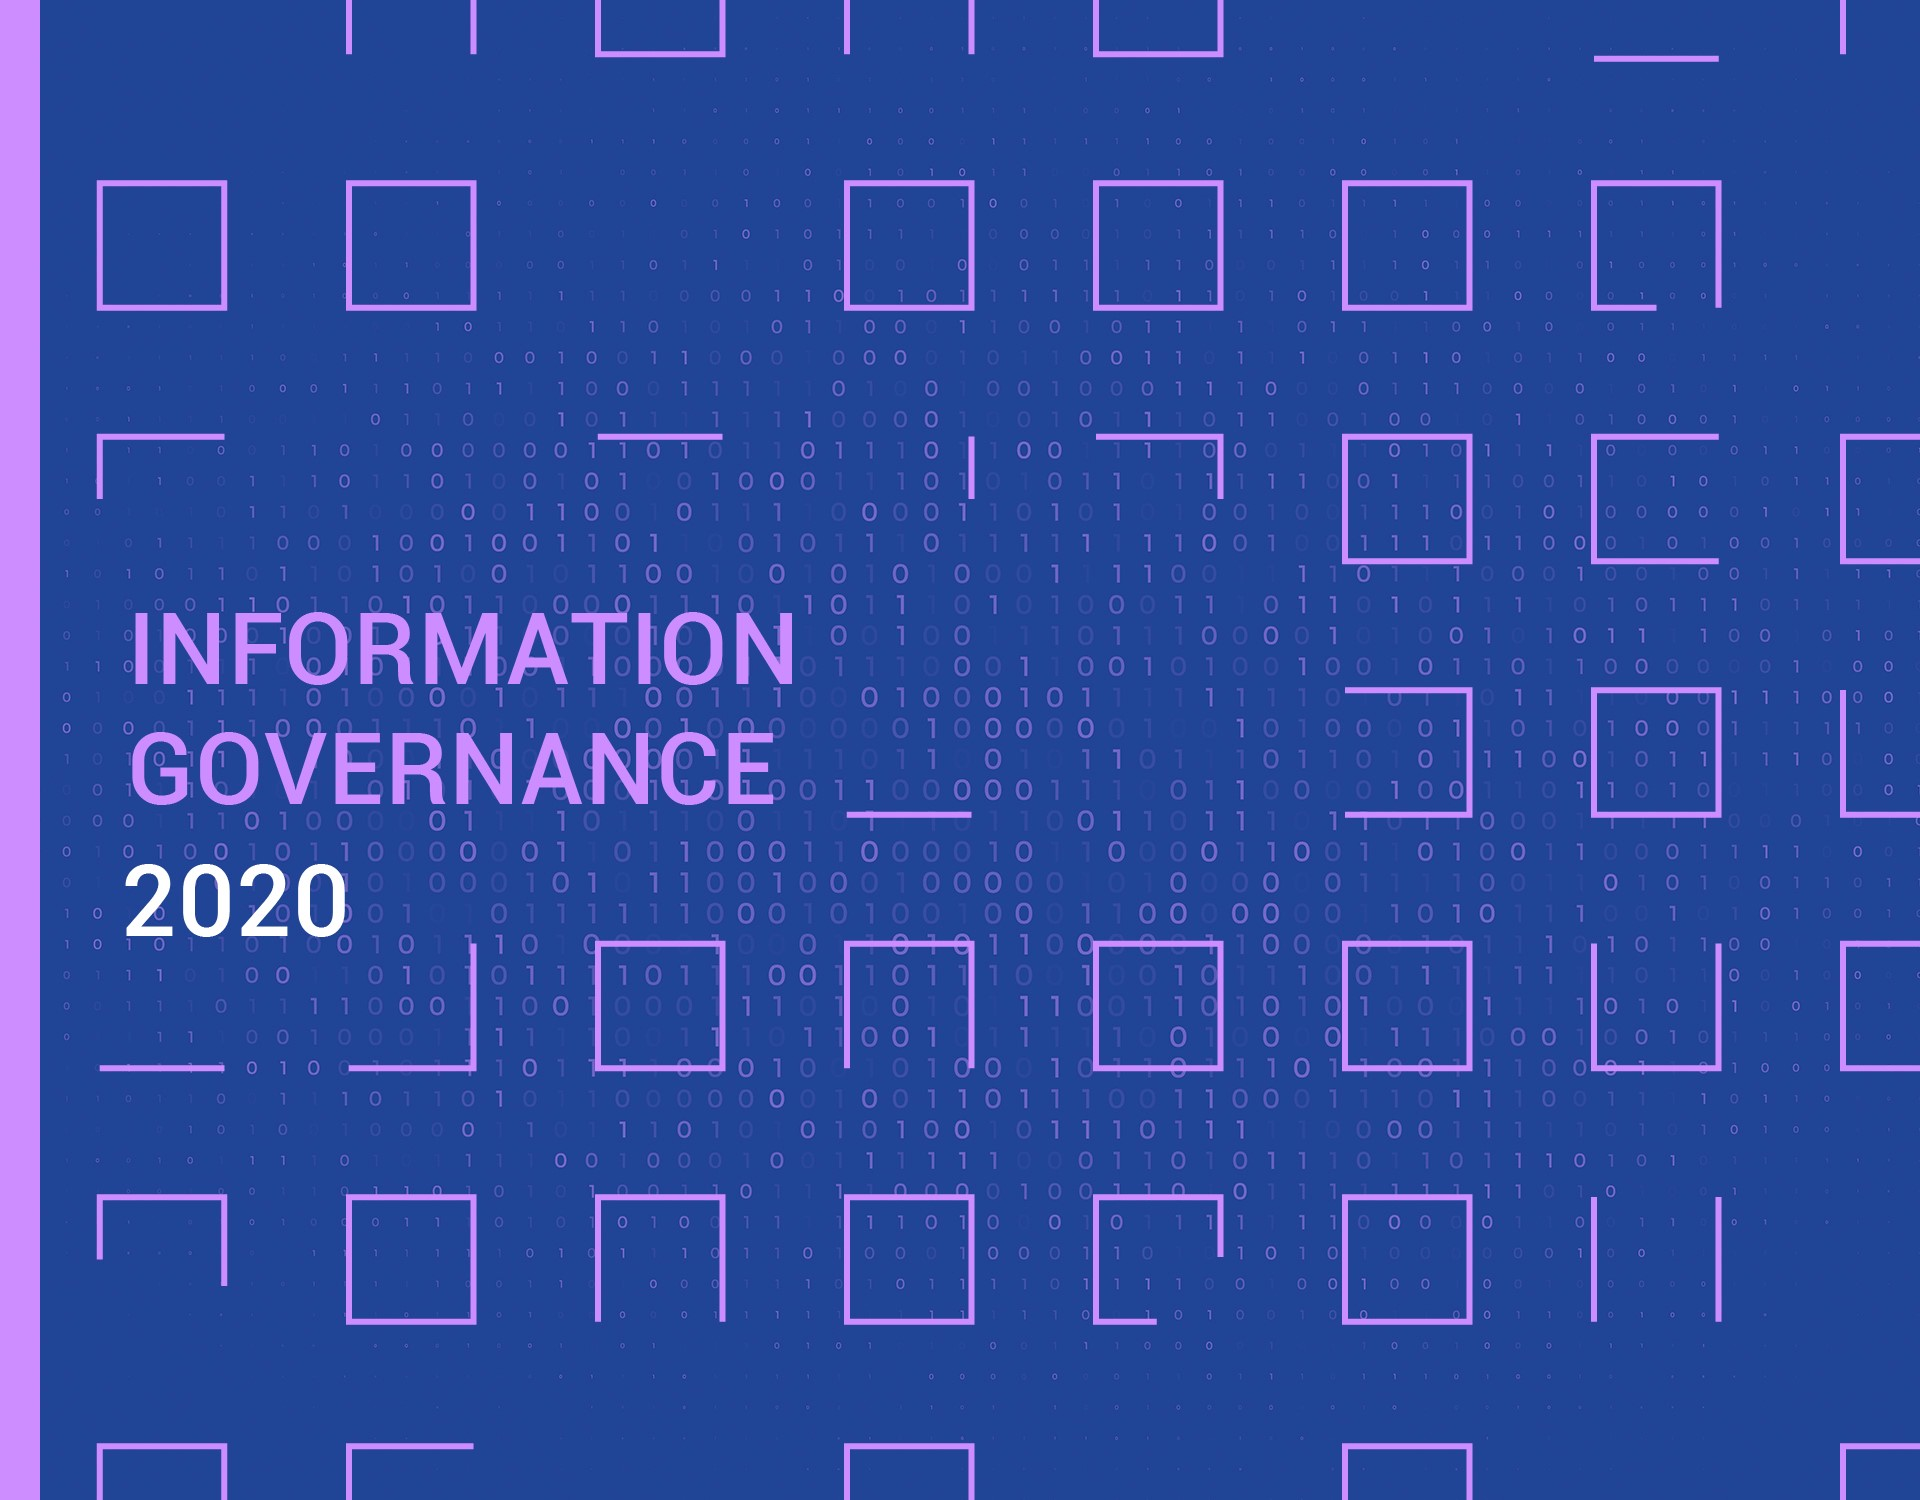 Rapporto Information Governance 2020 - The data matrix